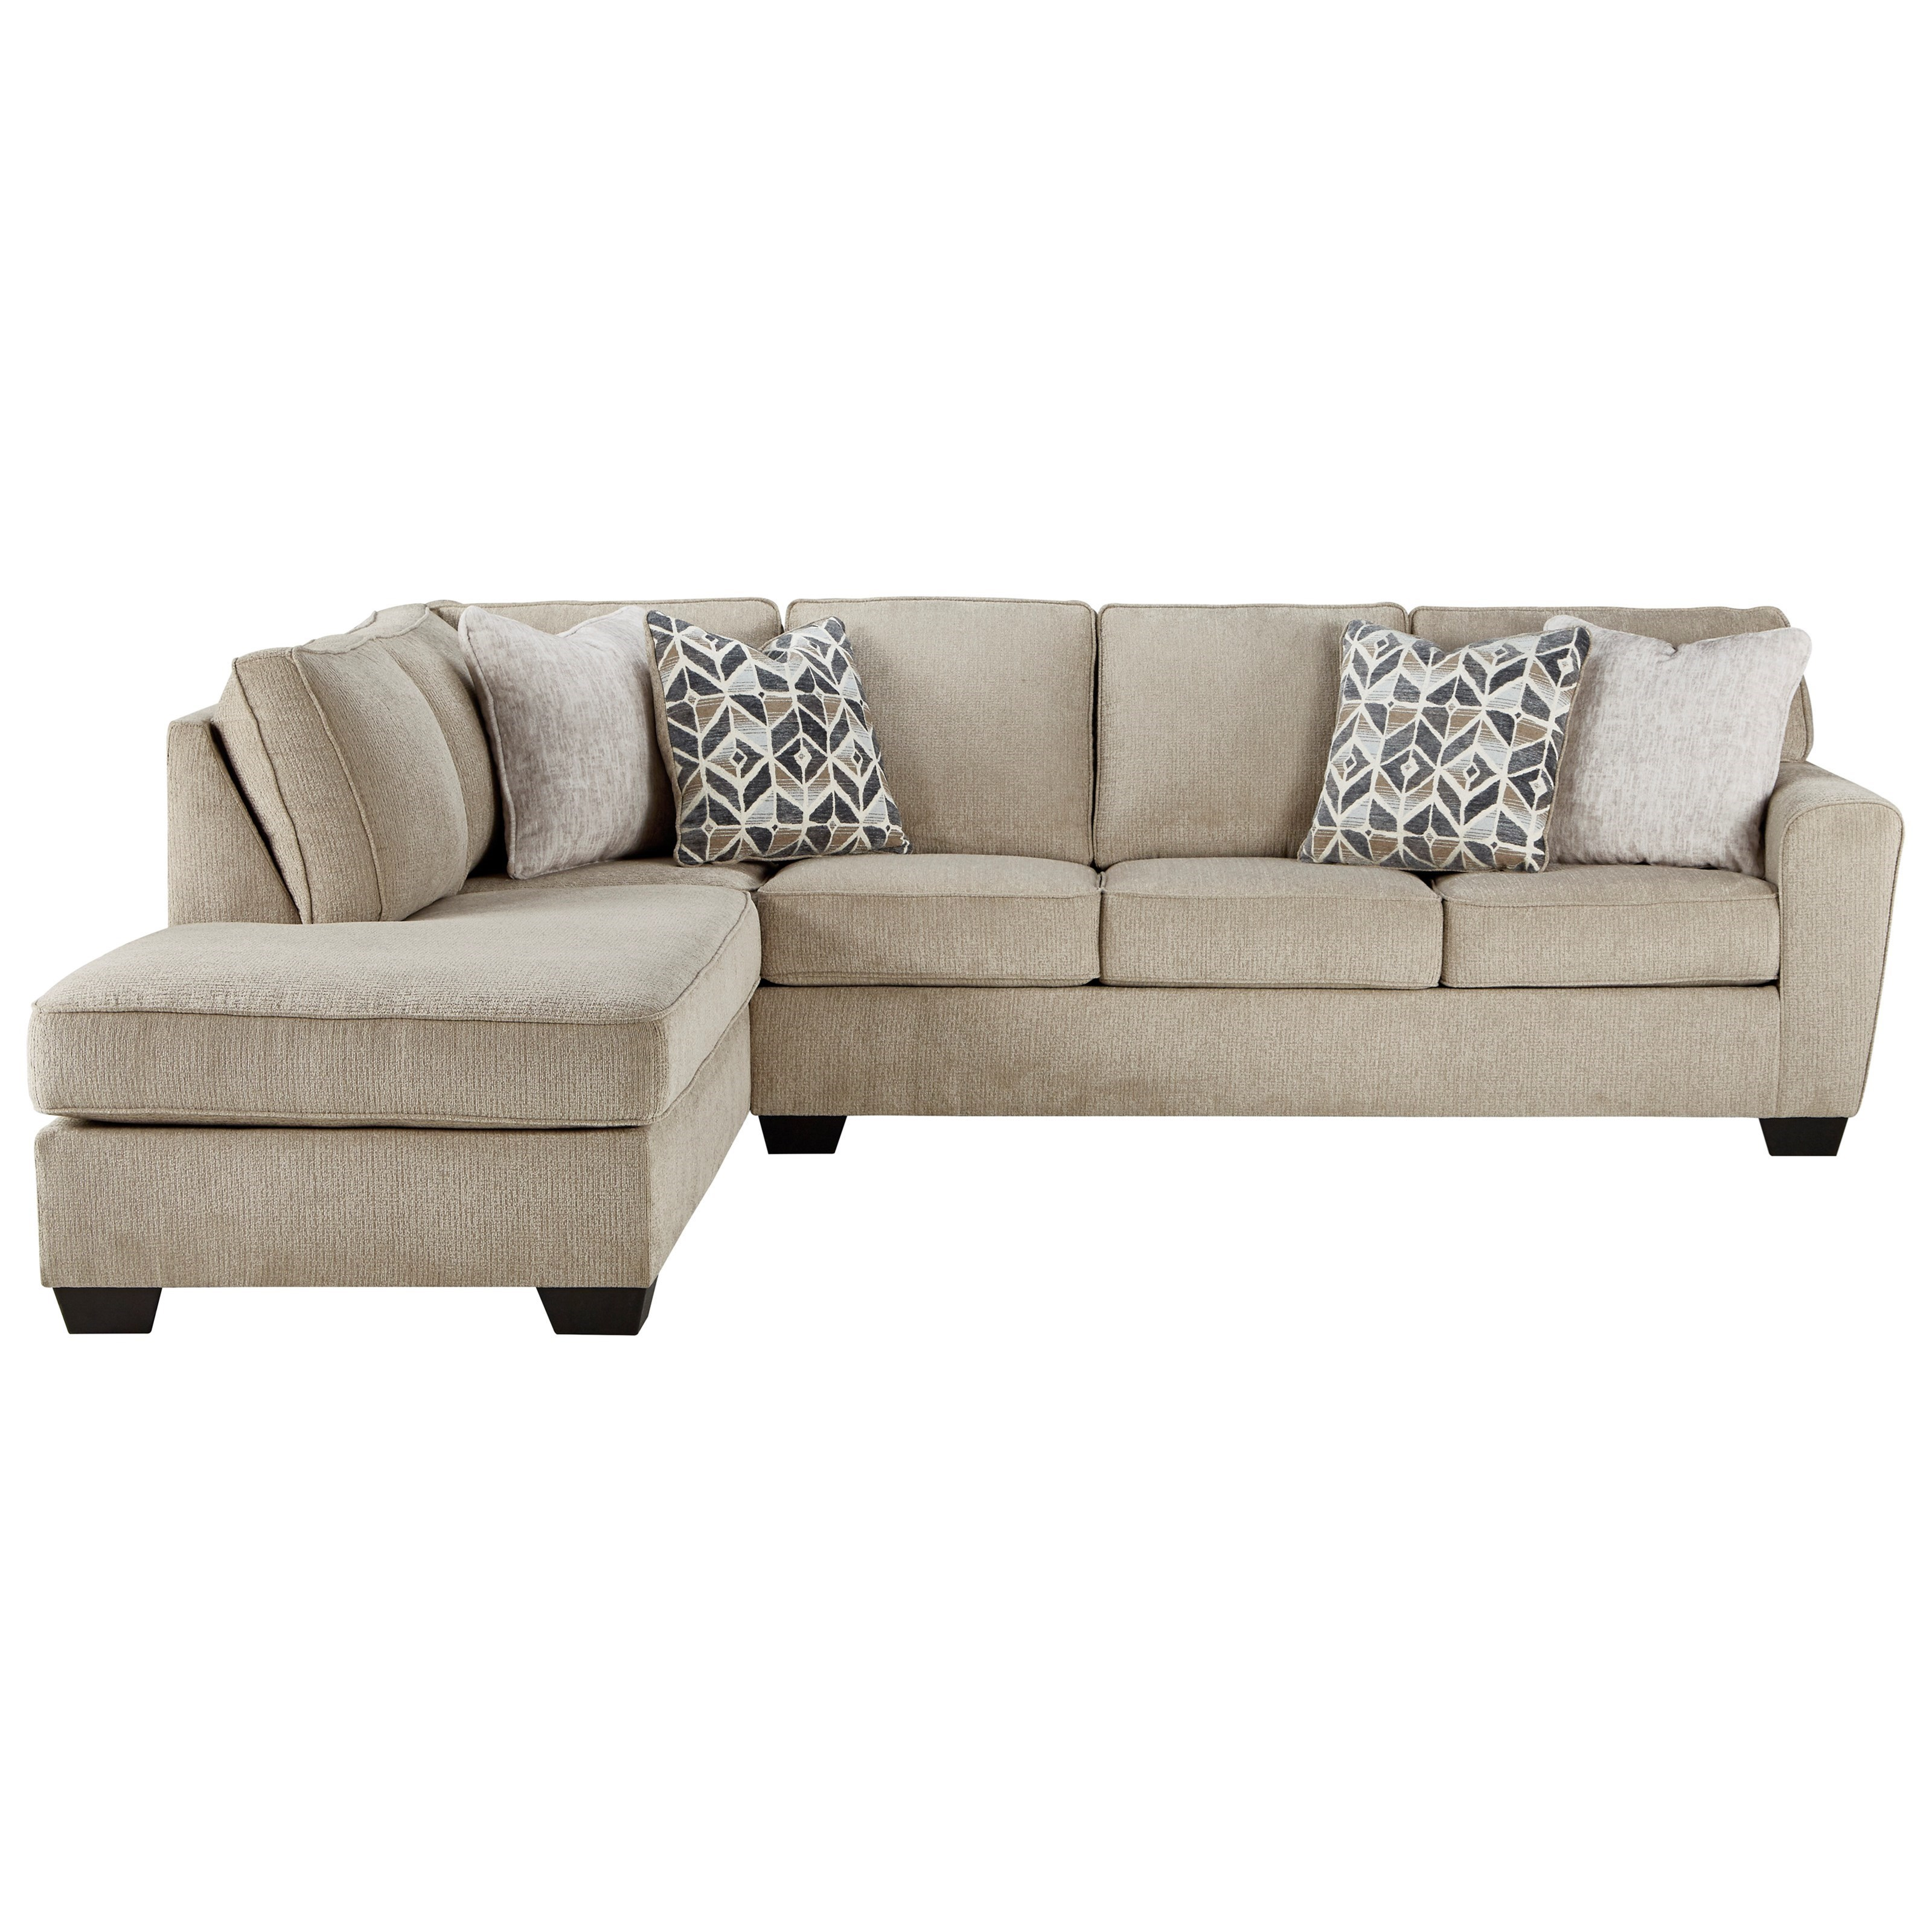 Decelle 2-Piece Sectional with Chaise by Ashley (Signature Design) at Johnny Janosik